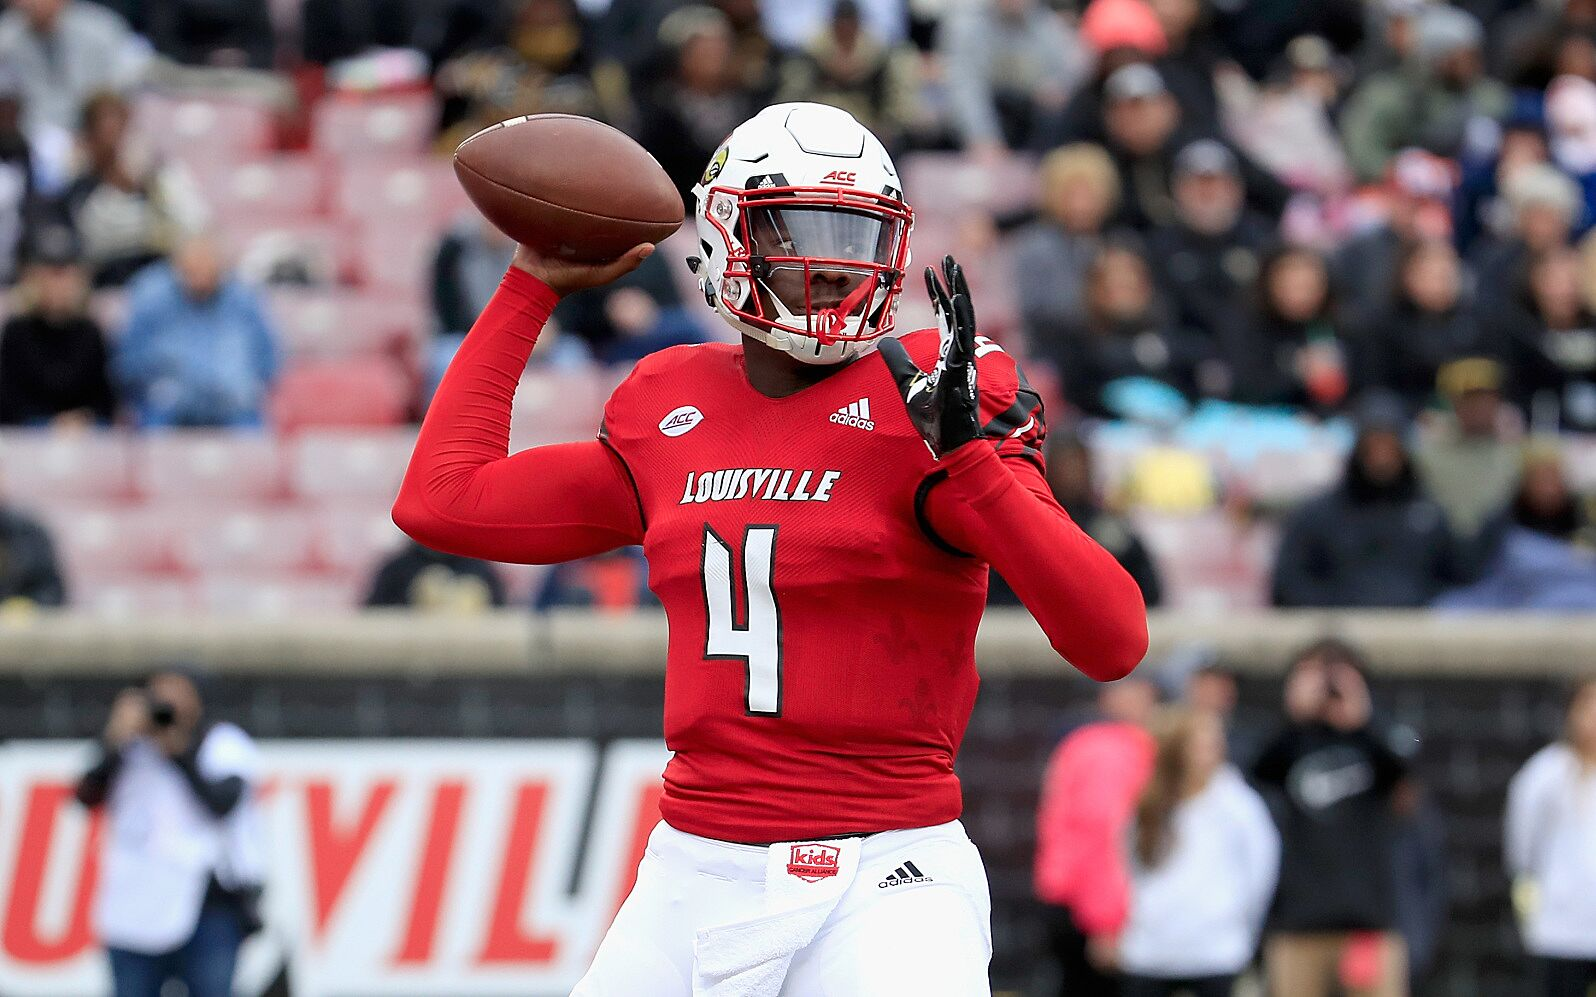 ec51a0155ea Louisville football  Ranking the most important Cards in 2019 - Page 2